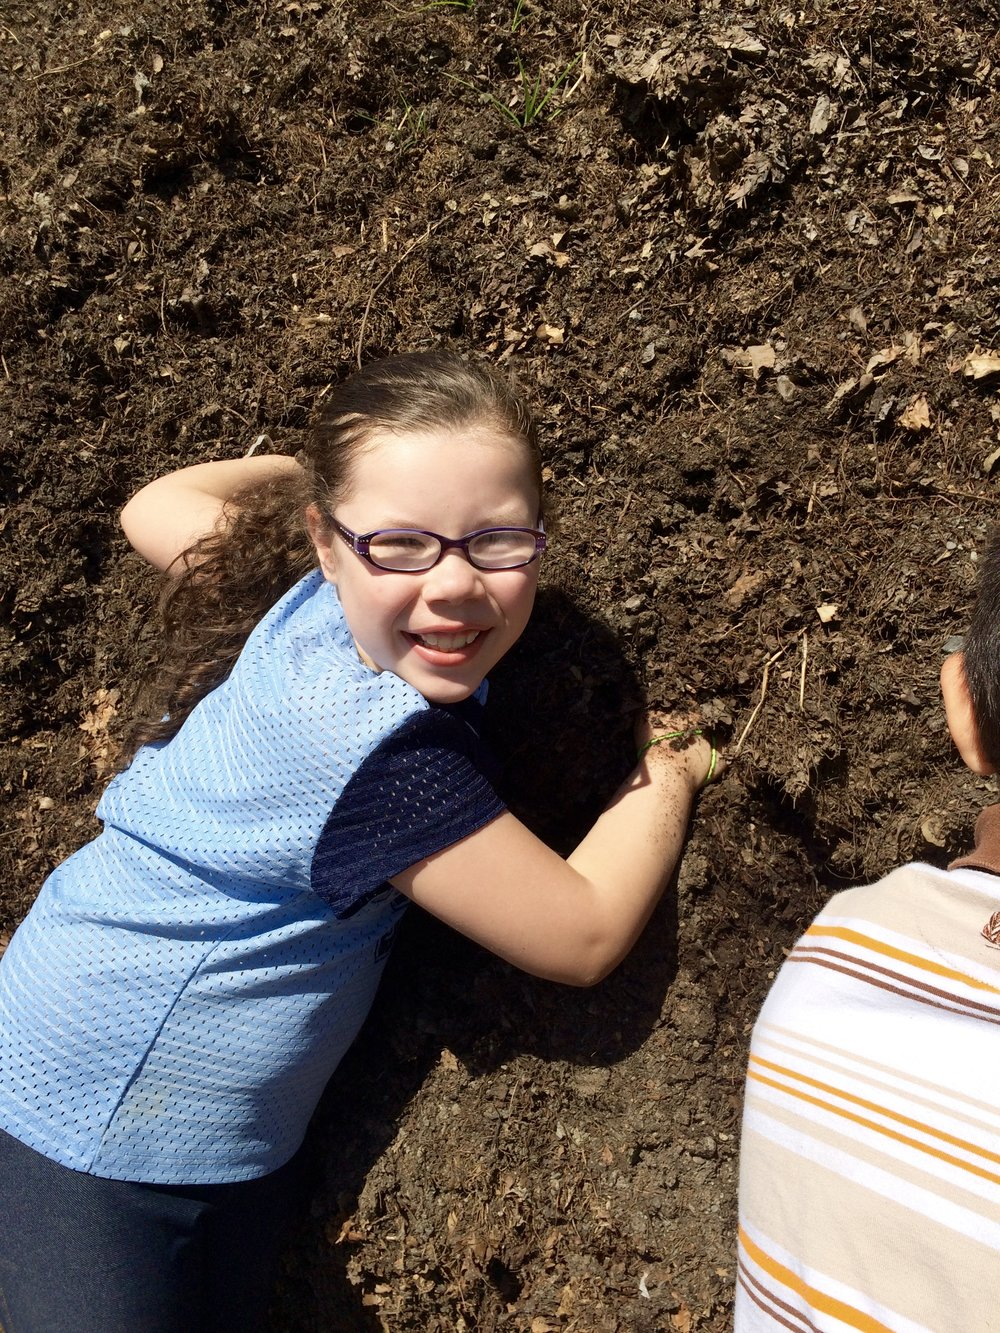 Visiting 2nd graders took turns reaching into the giant compost pile to feel the warmth of decomposing leaves inside.